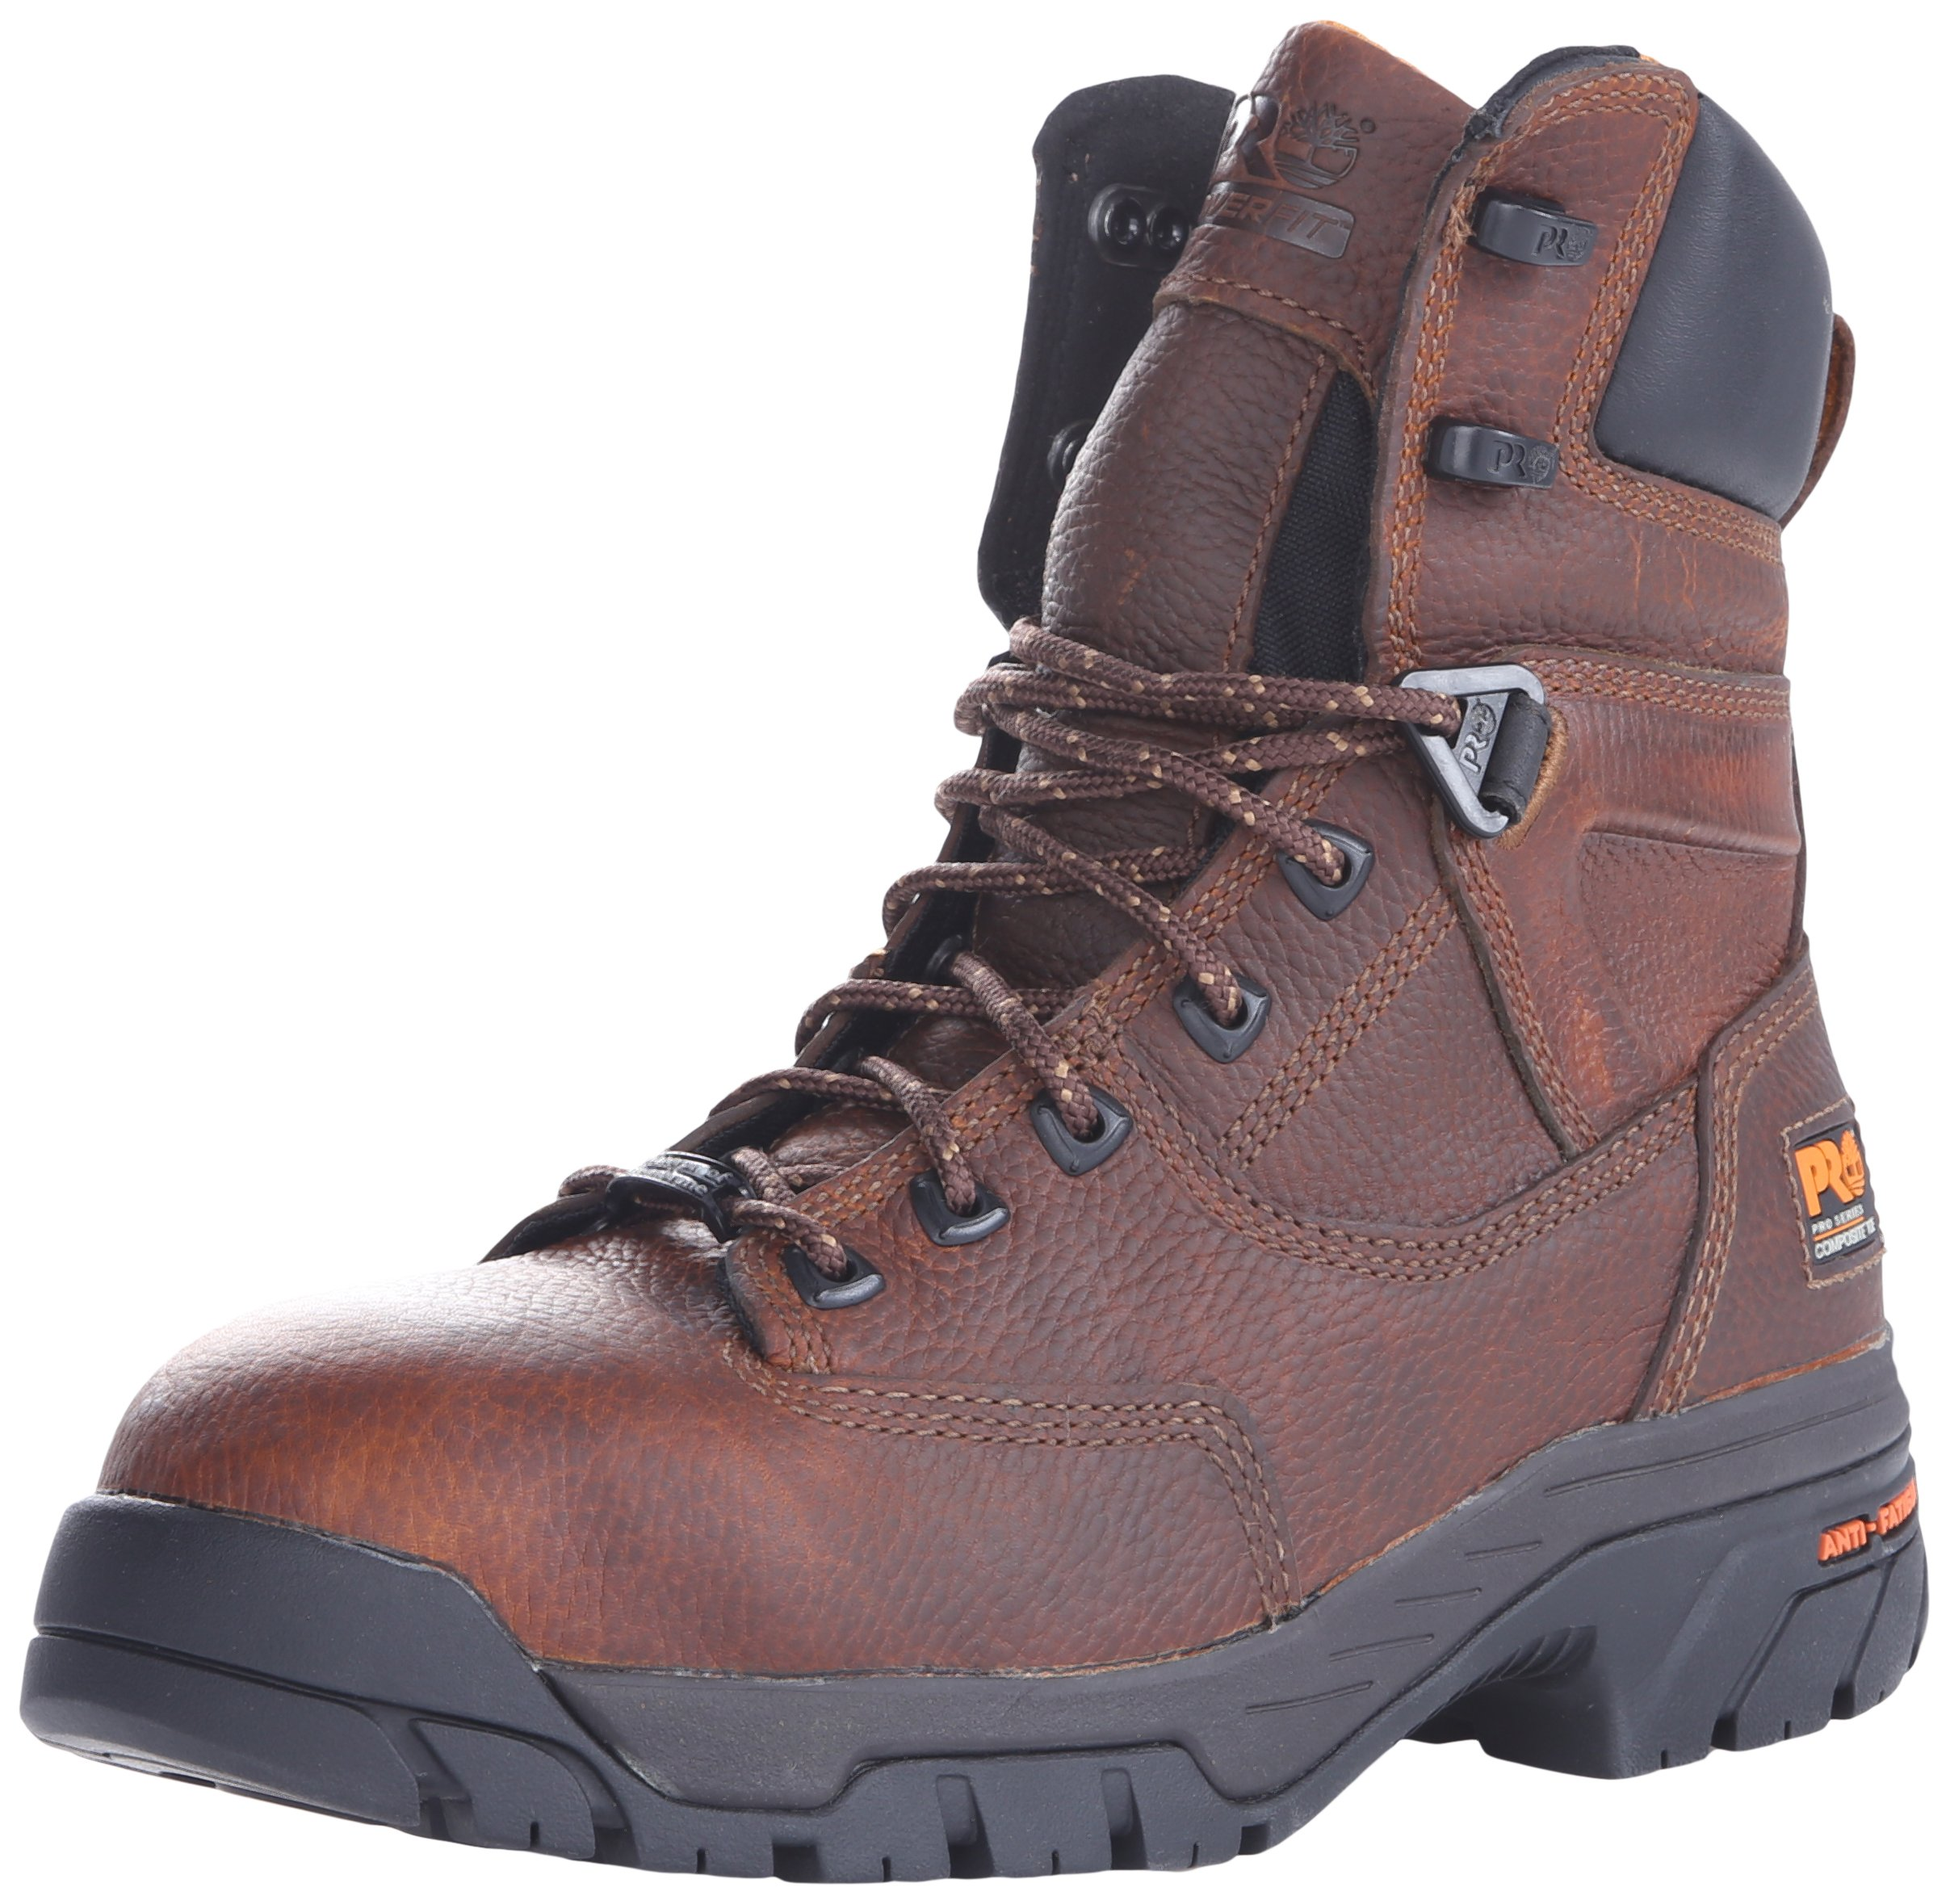 Timberland PRO Men's Helix 8 Inch Comp Toe Work Boot,Brown,10.5 W US